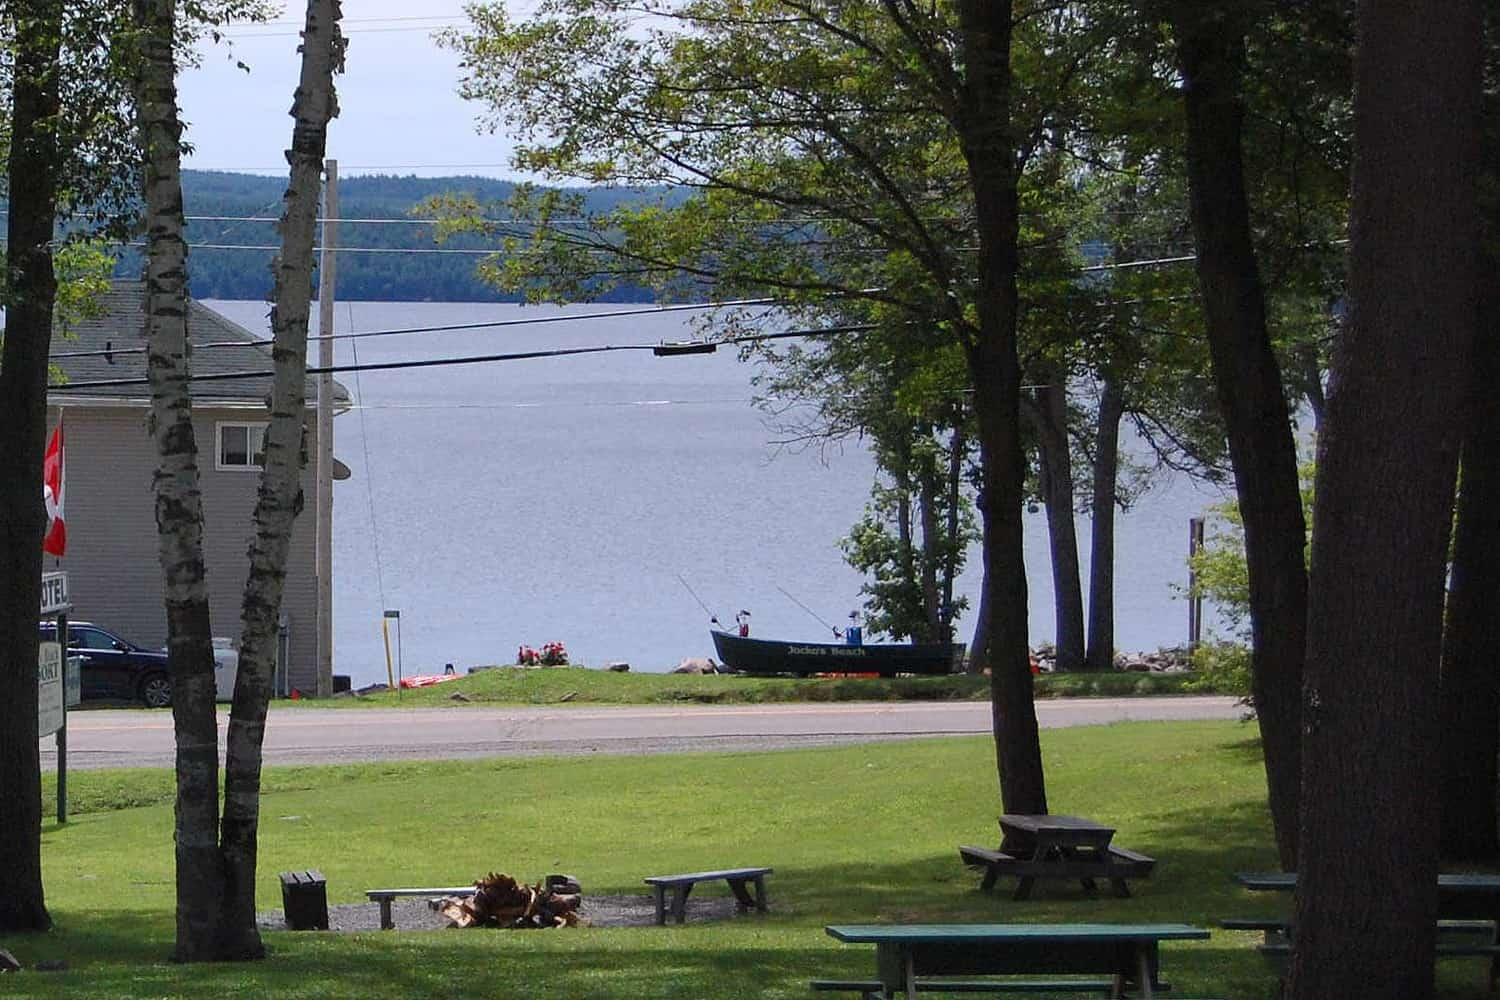 View of the rear of the Lakeside House and Calabogie Lake from the motel